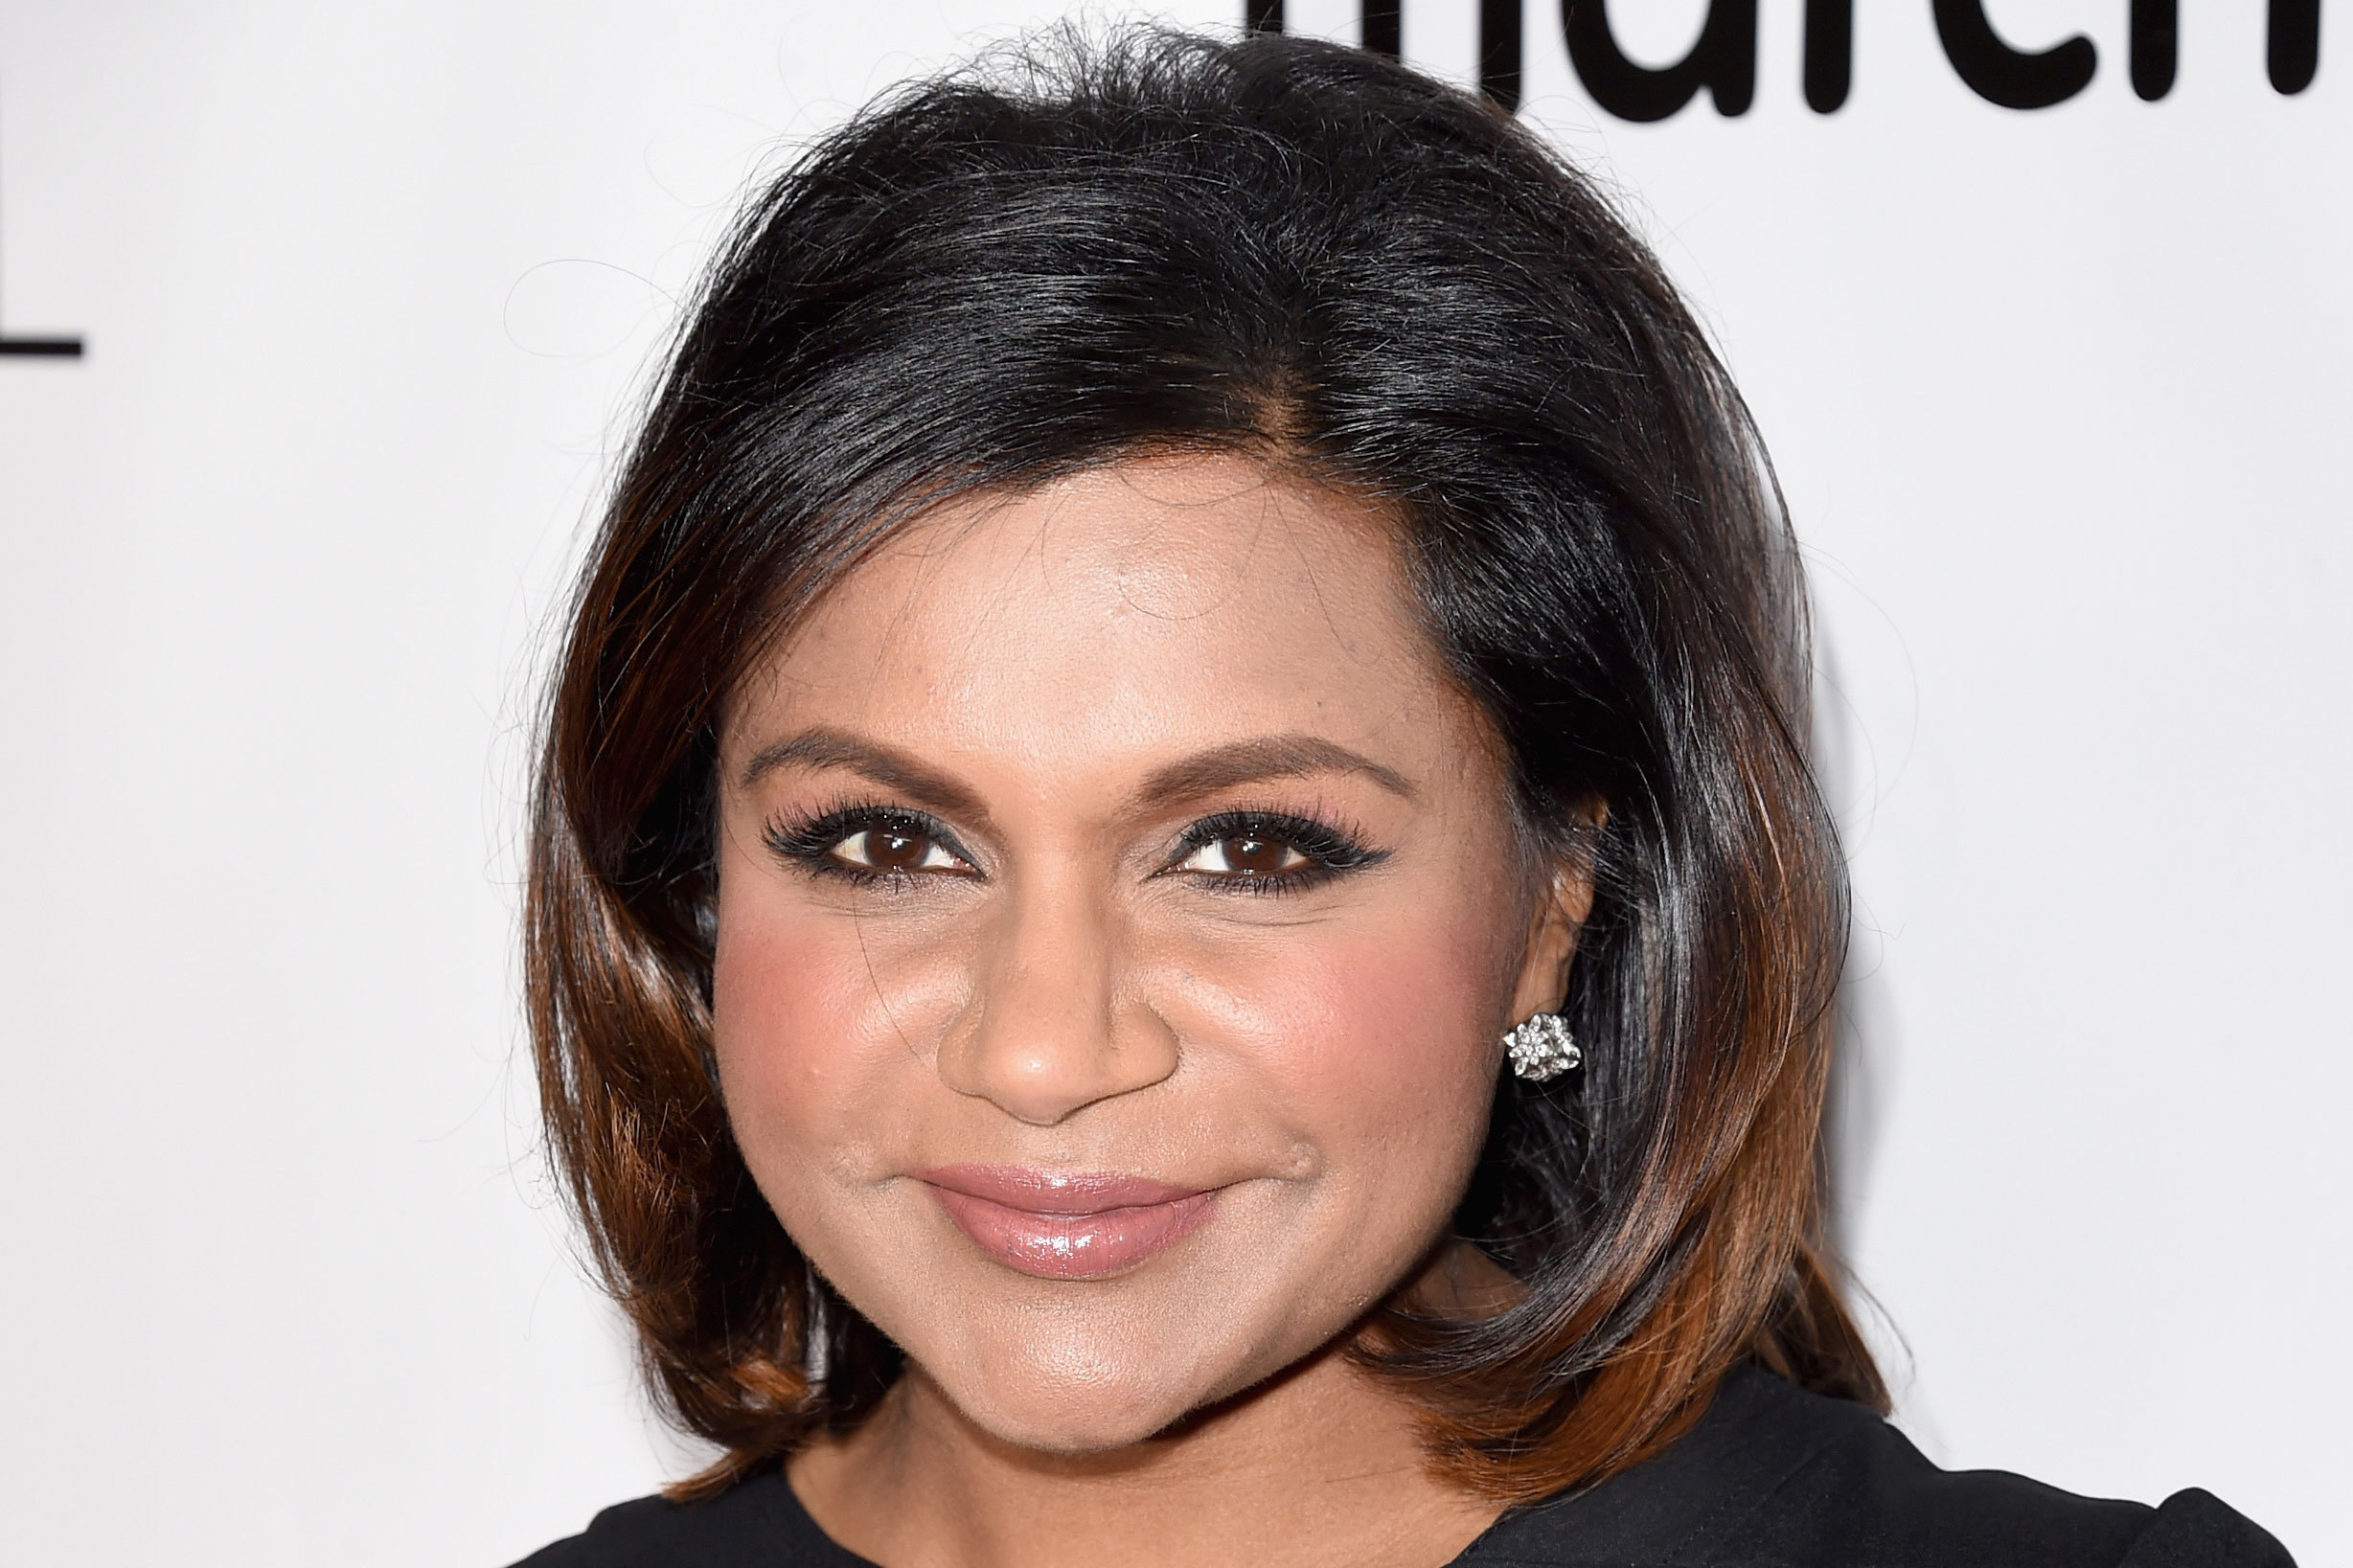 Pictures Of Mindy Kaling